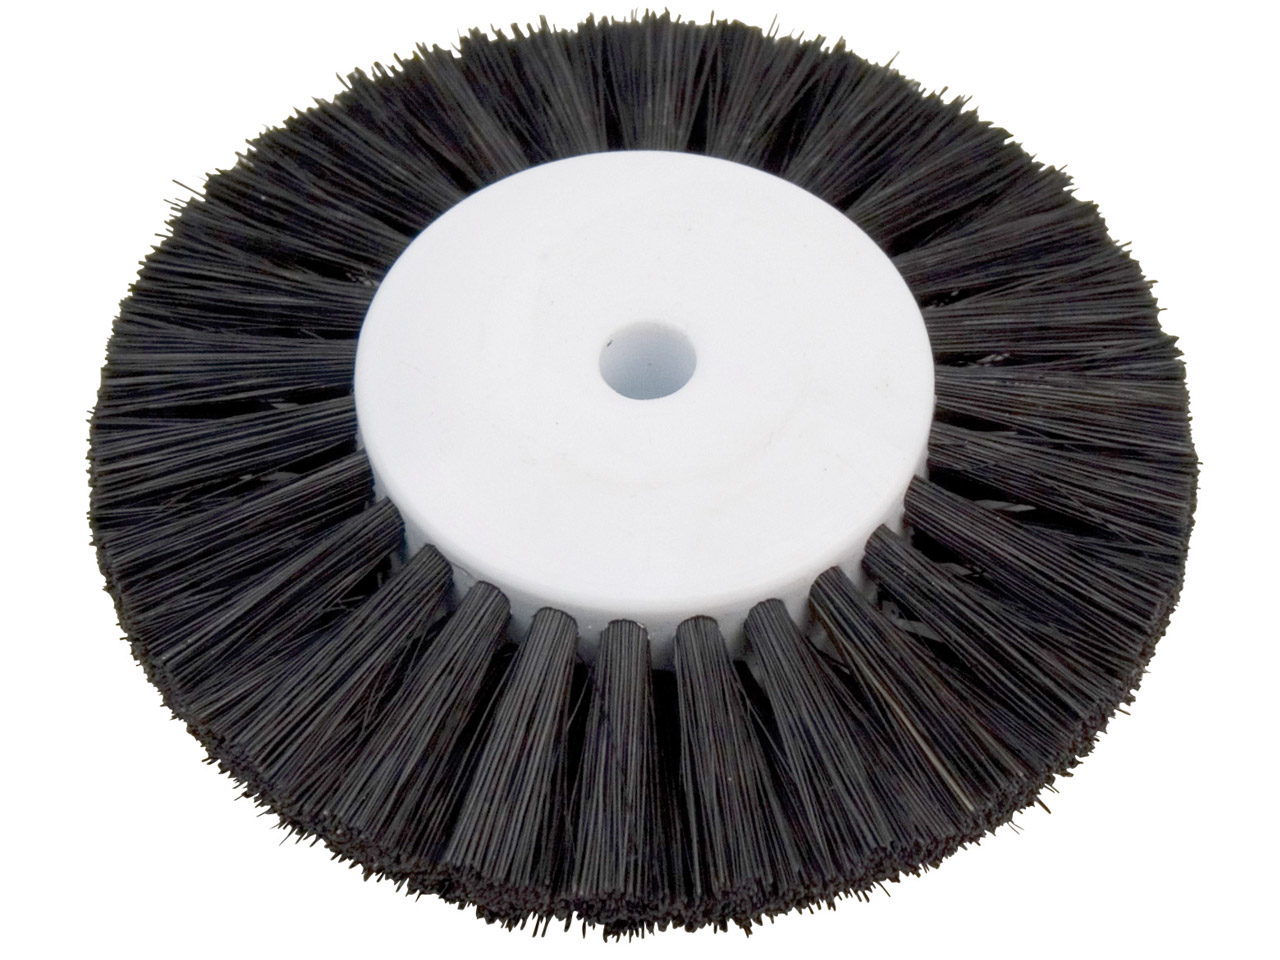 Black Bristle Lathe Brush 2.5